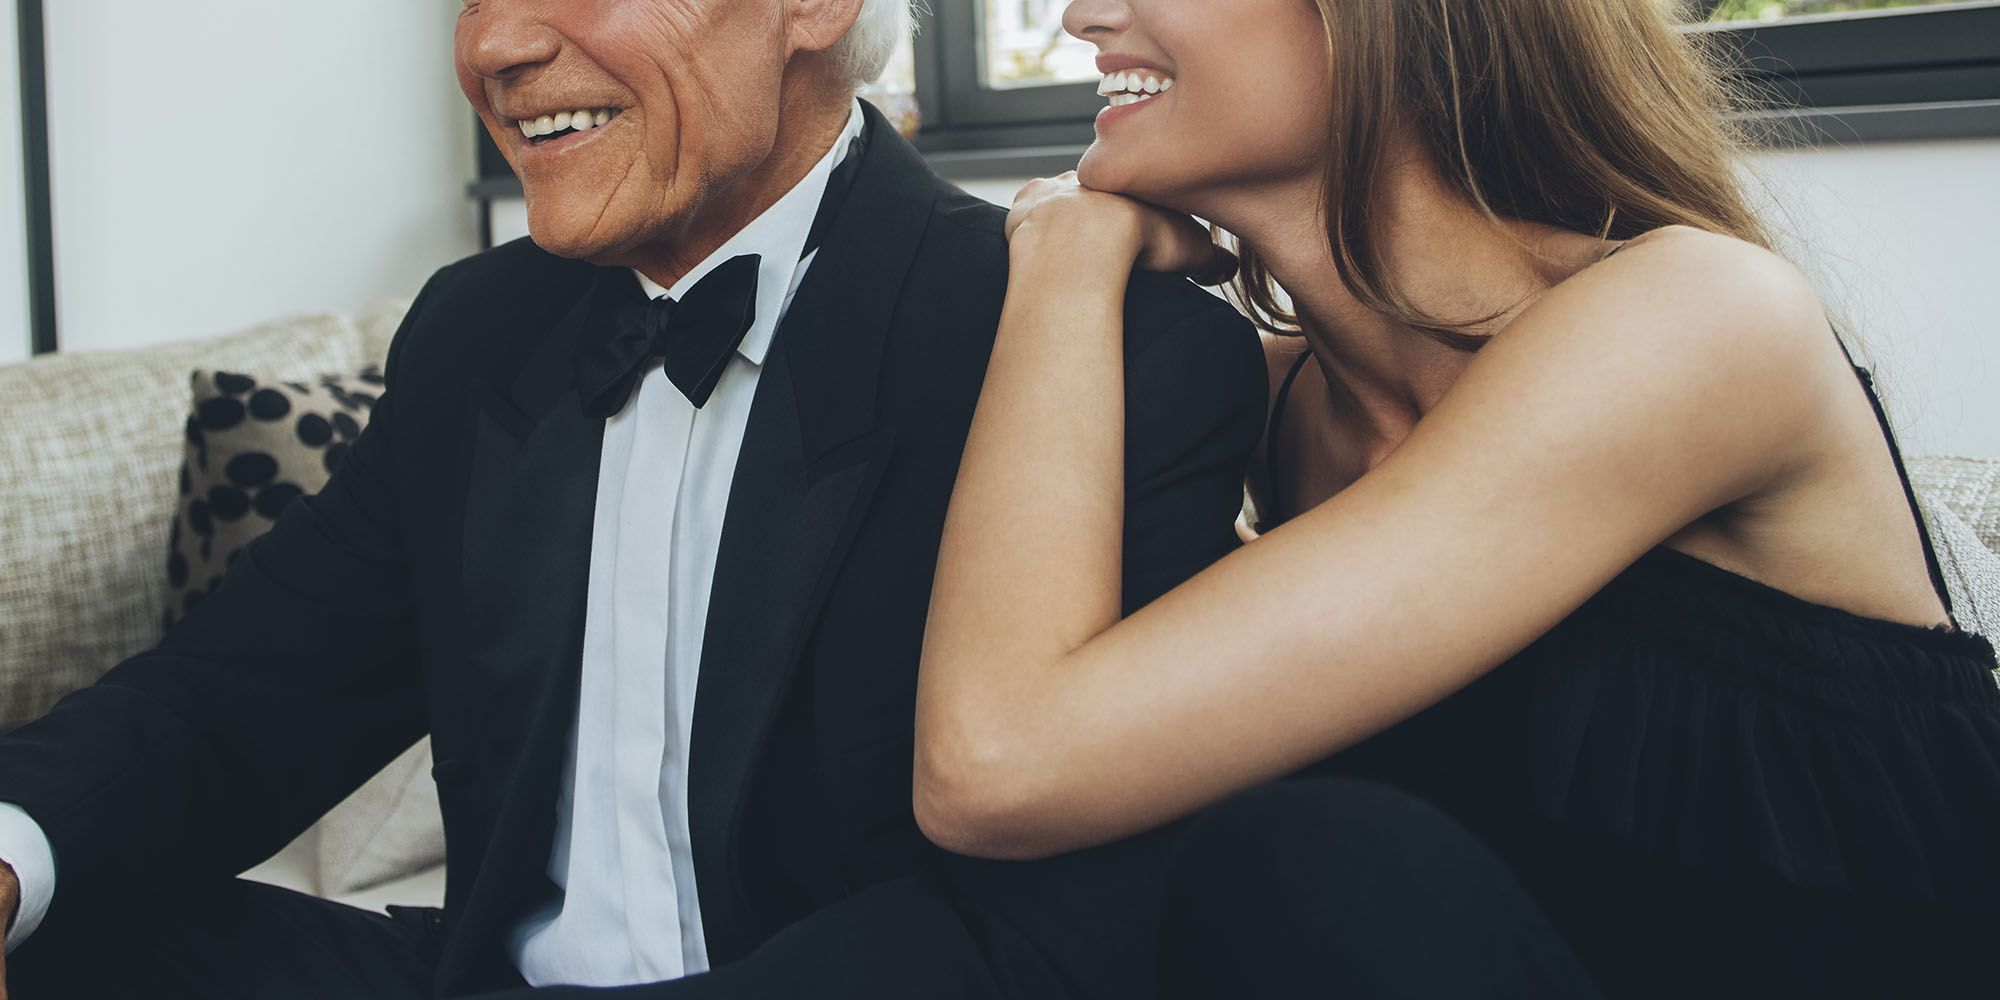 ResearchED: The Emergence Of Sugar Baby-Sugar Daddy Culture In India